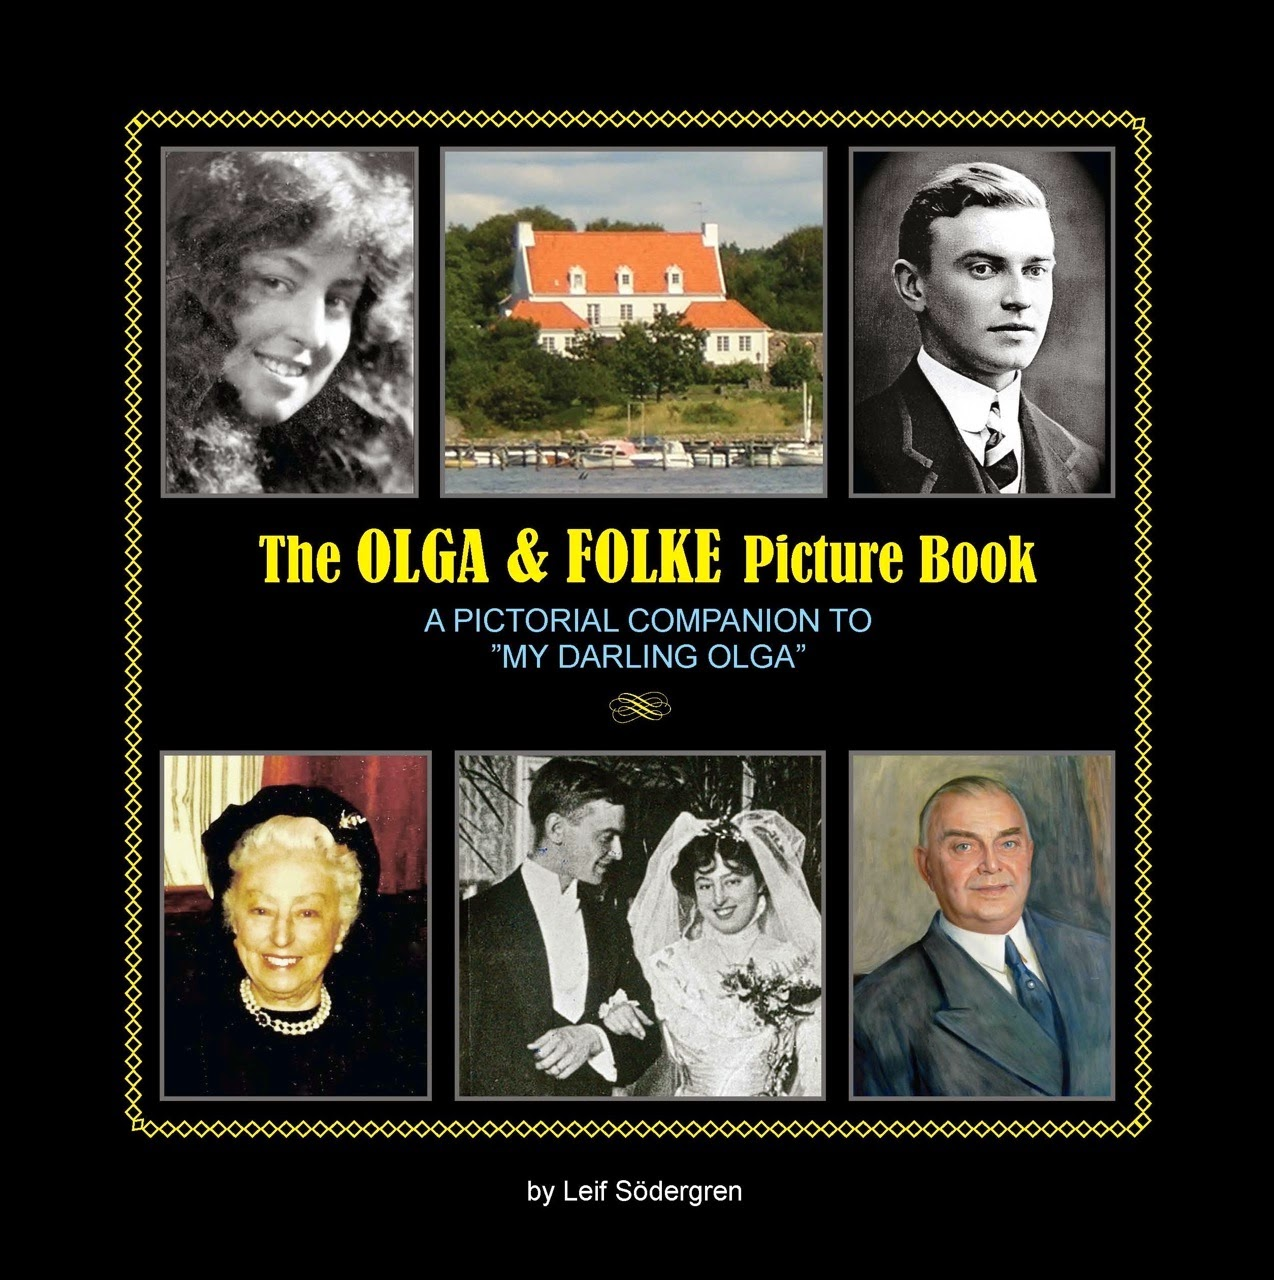 A pictorial Companion to the letters in the book above: 150 pictures of Olga & Folke 1909-1978